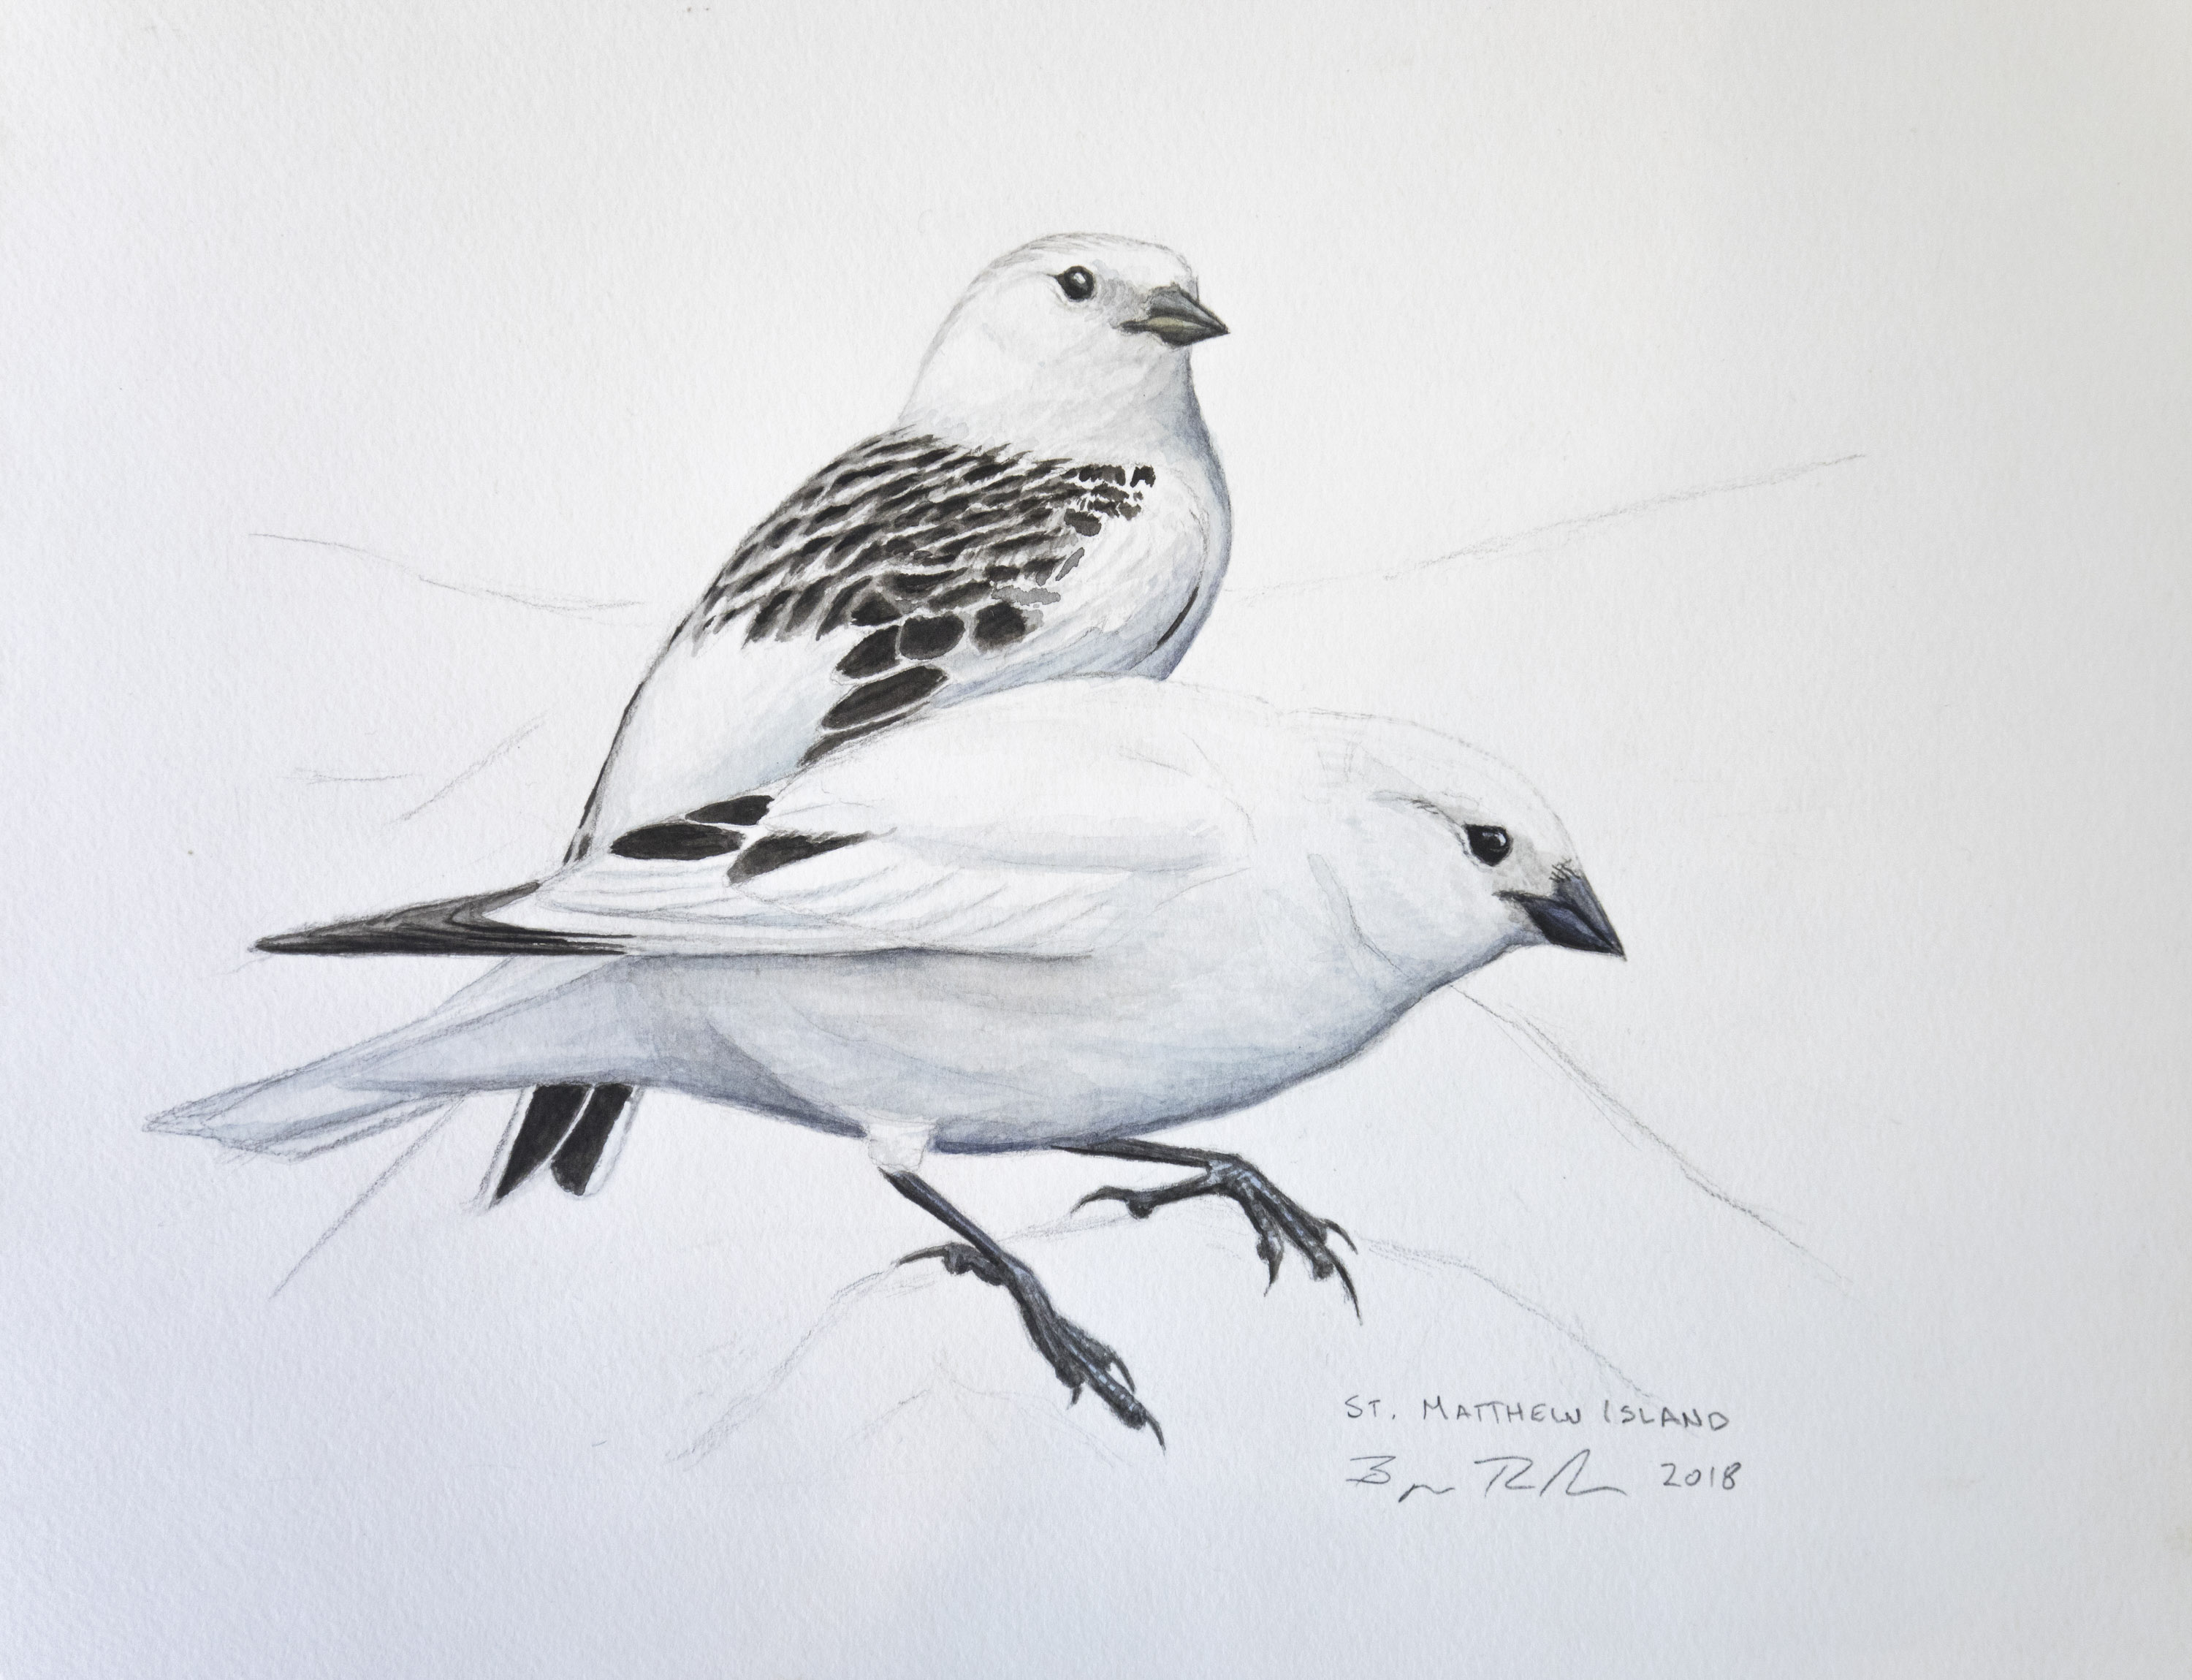 Mckay's Bunting pair illustration